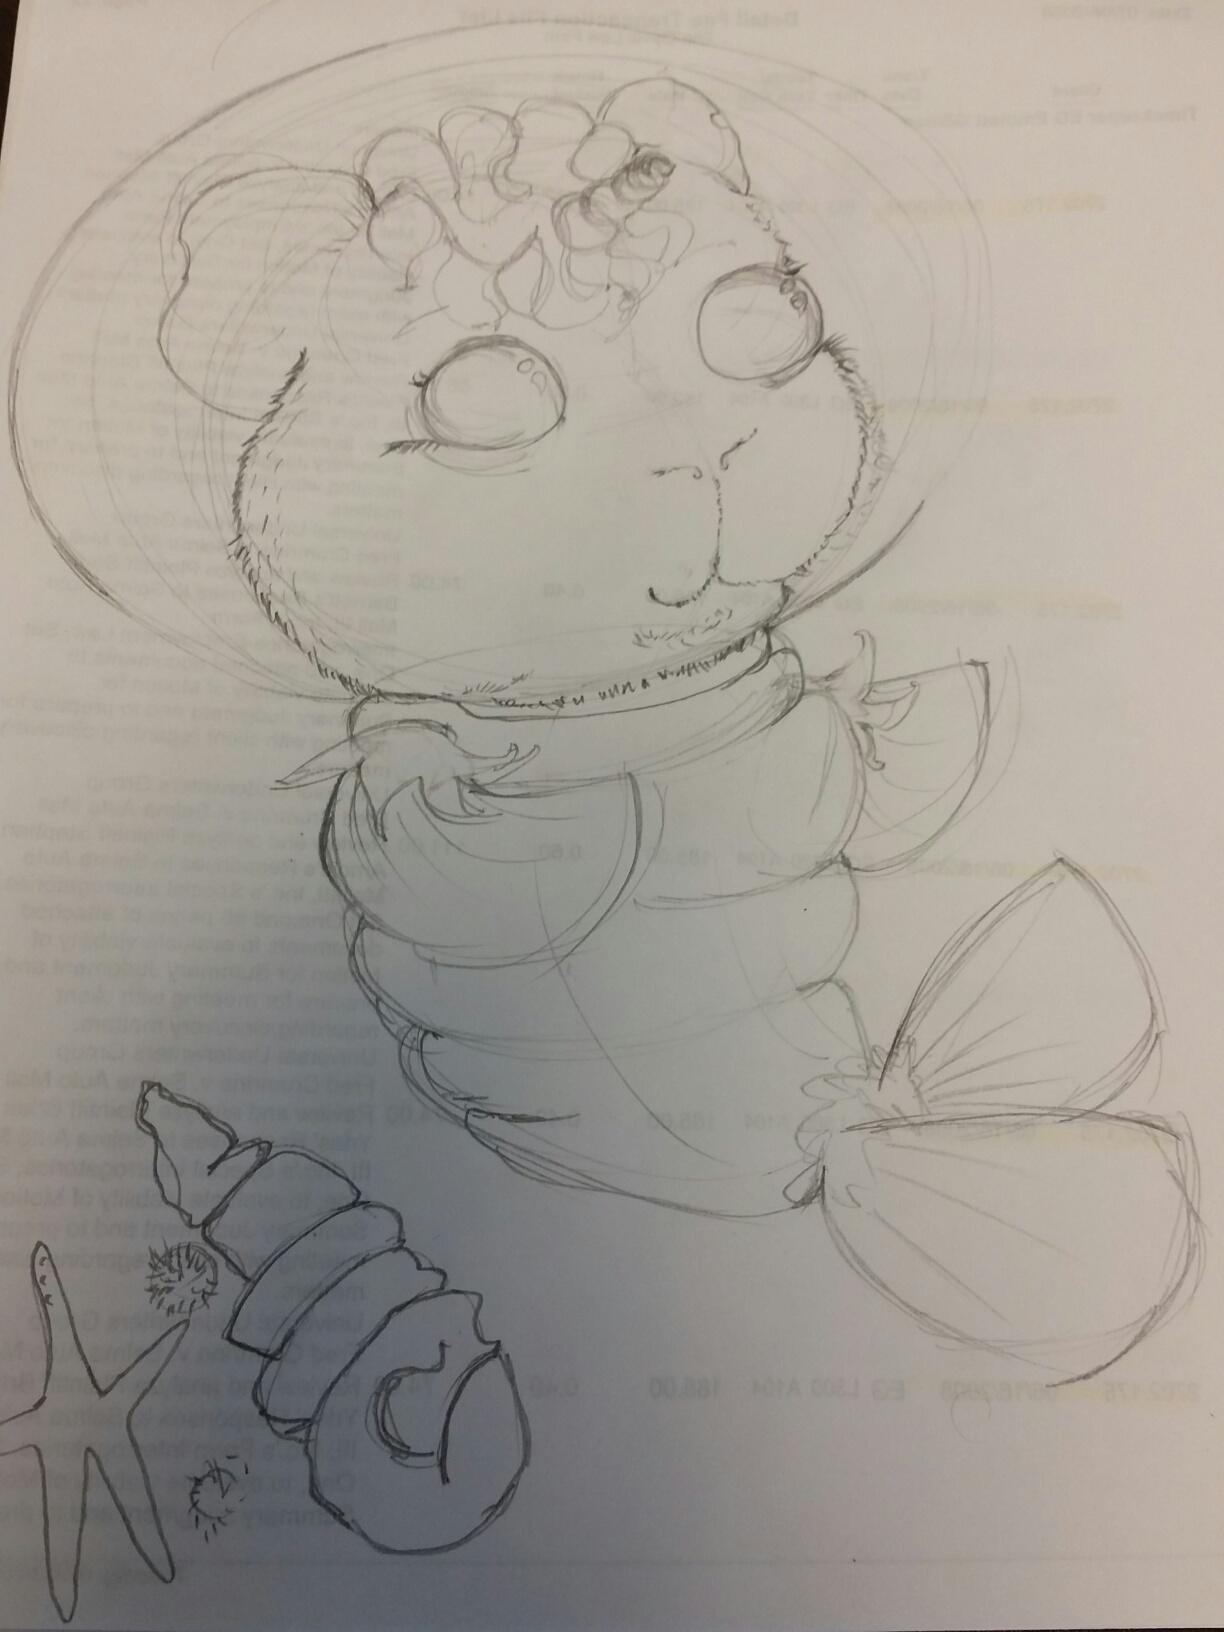 Guinipig with unicorn horn in shrimp space suit - image 4 - student project